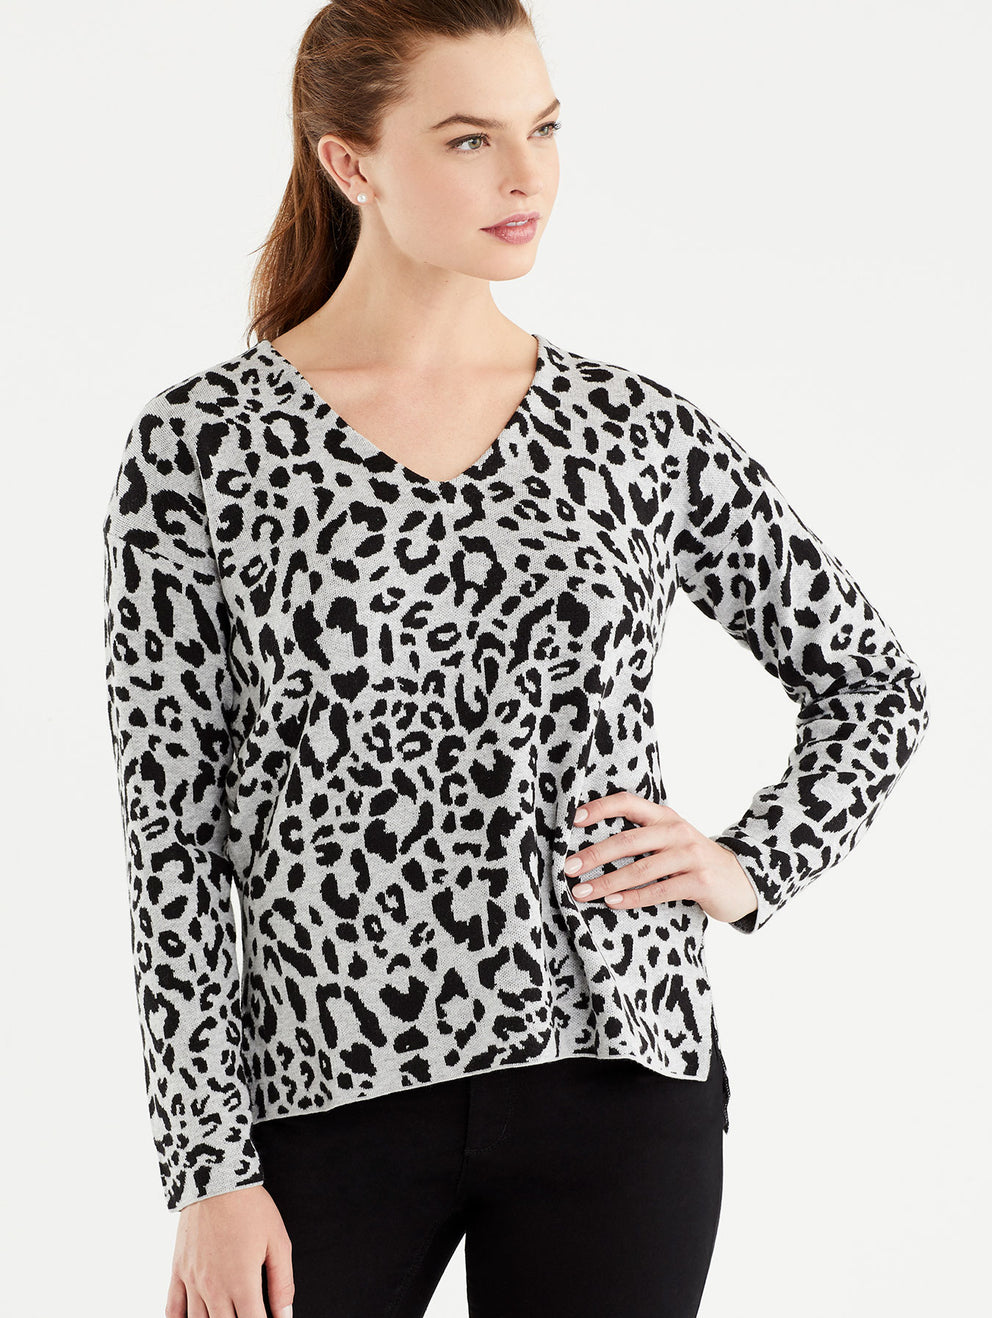 The Jones New York Grey Leopard Print V-Neck Tunic in color Grey Leopard Print - Image Position 1